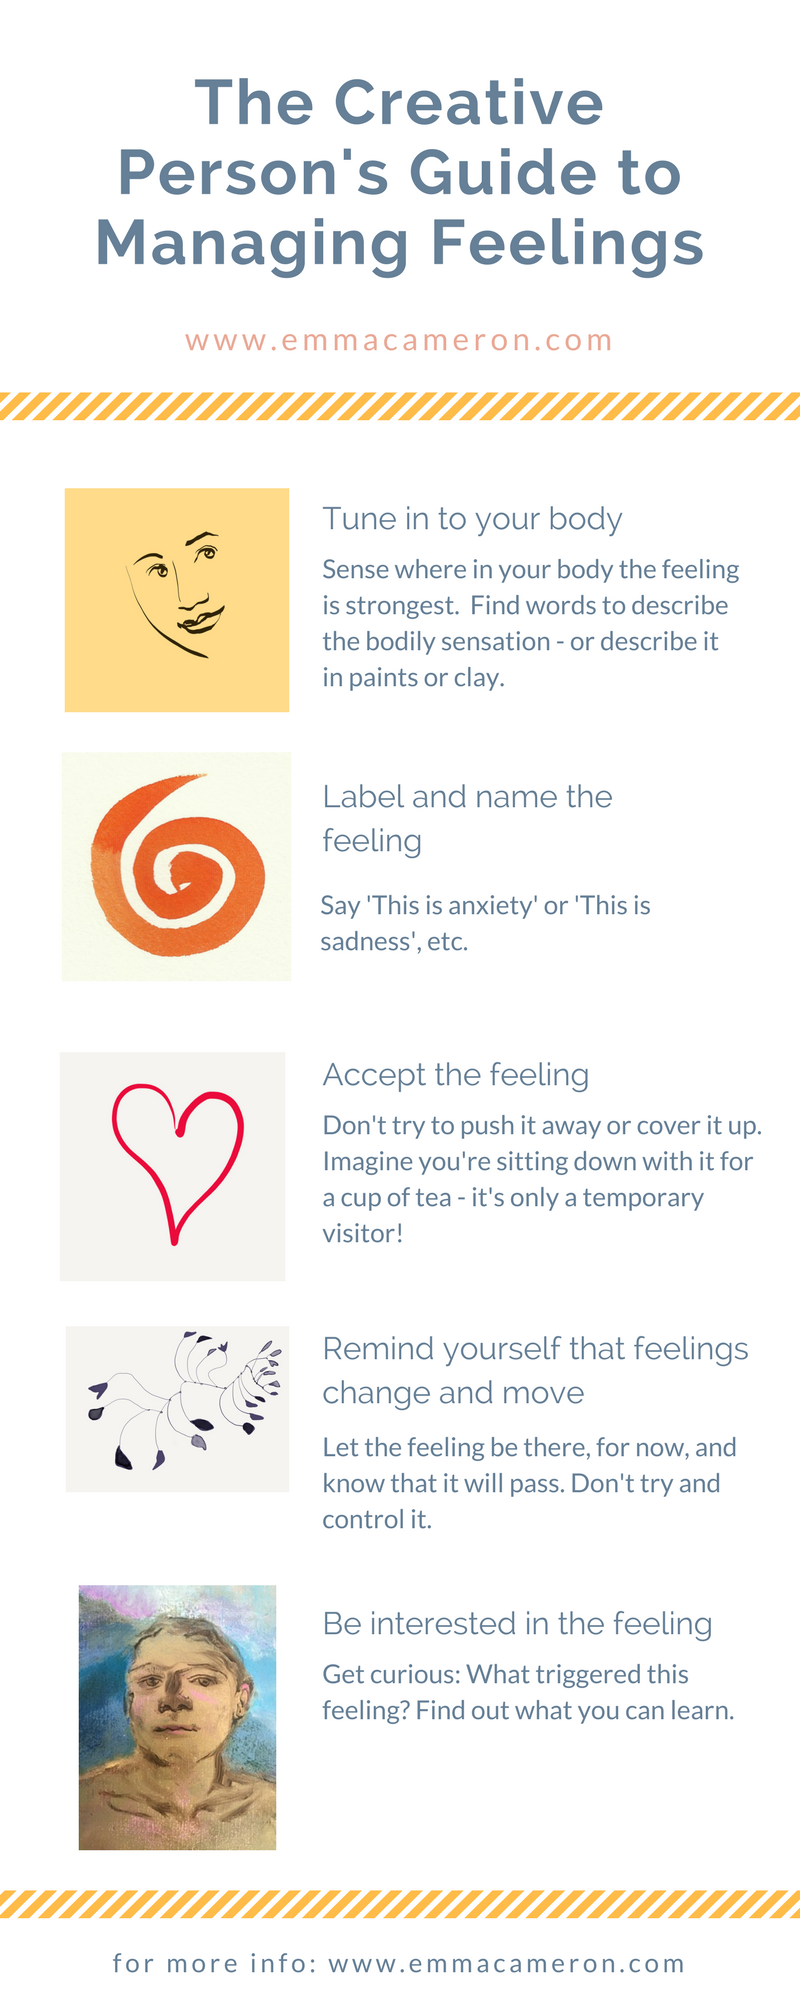 The Creative Person's Guide to Managing Feelings